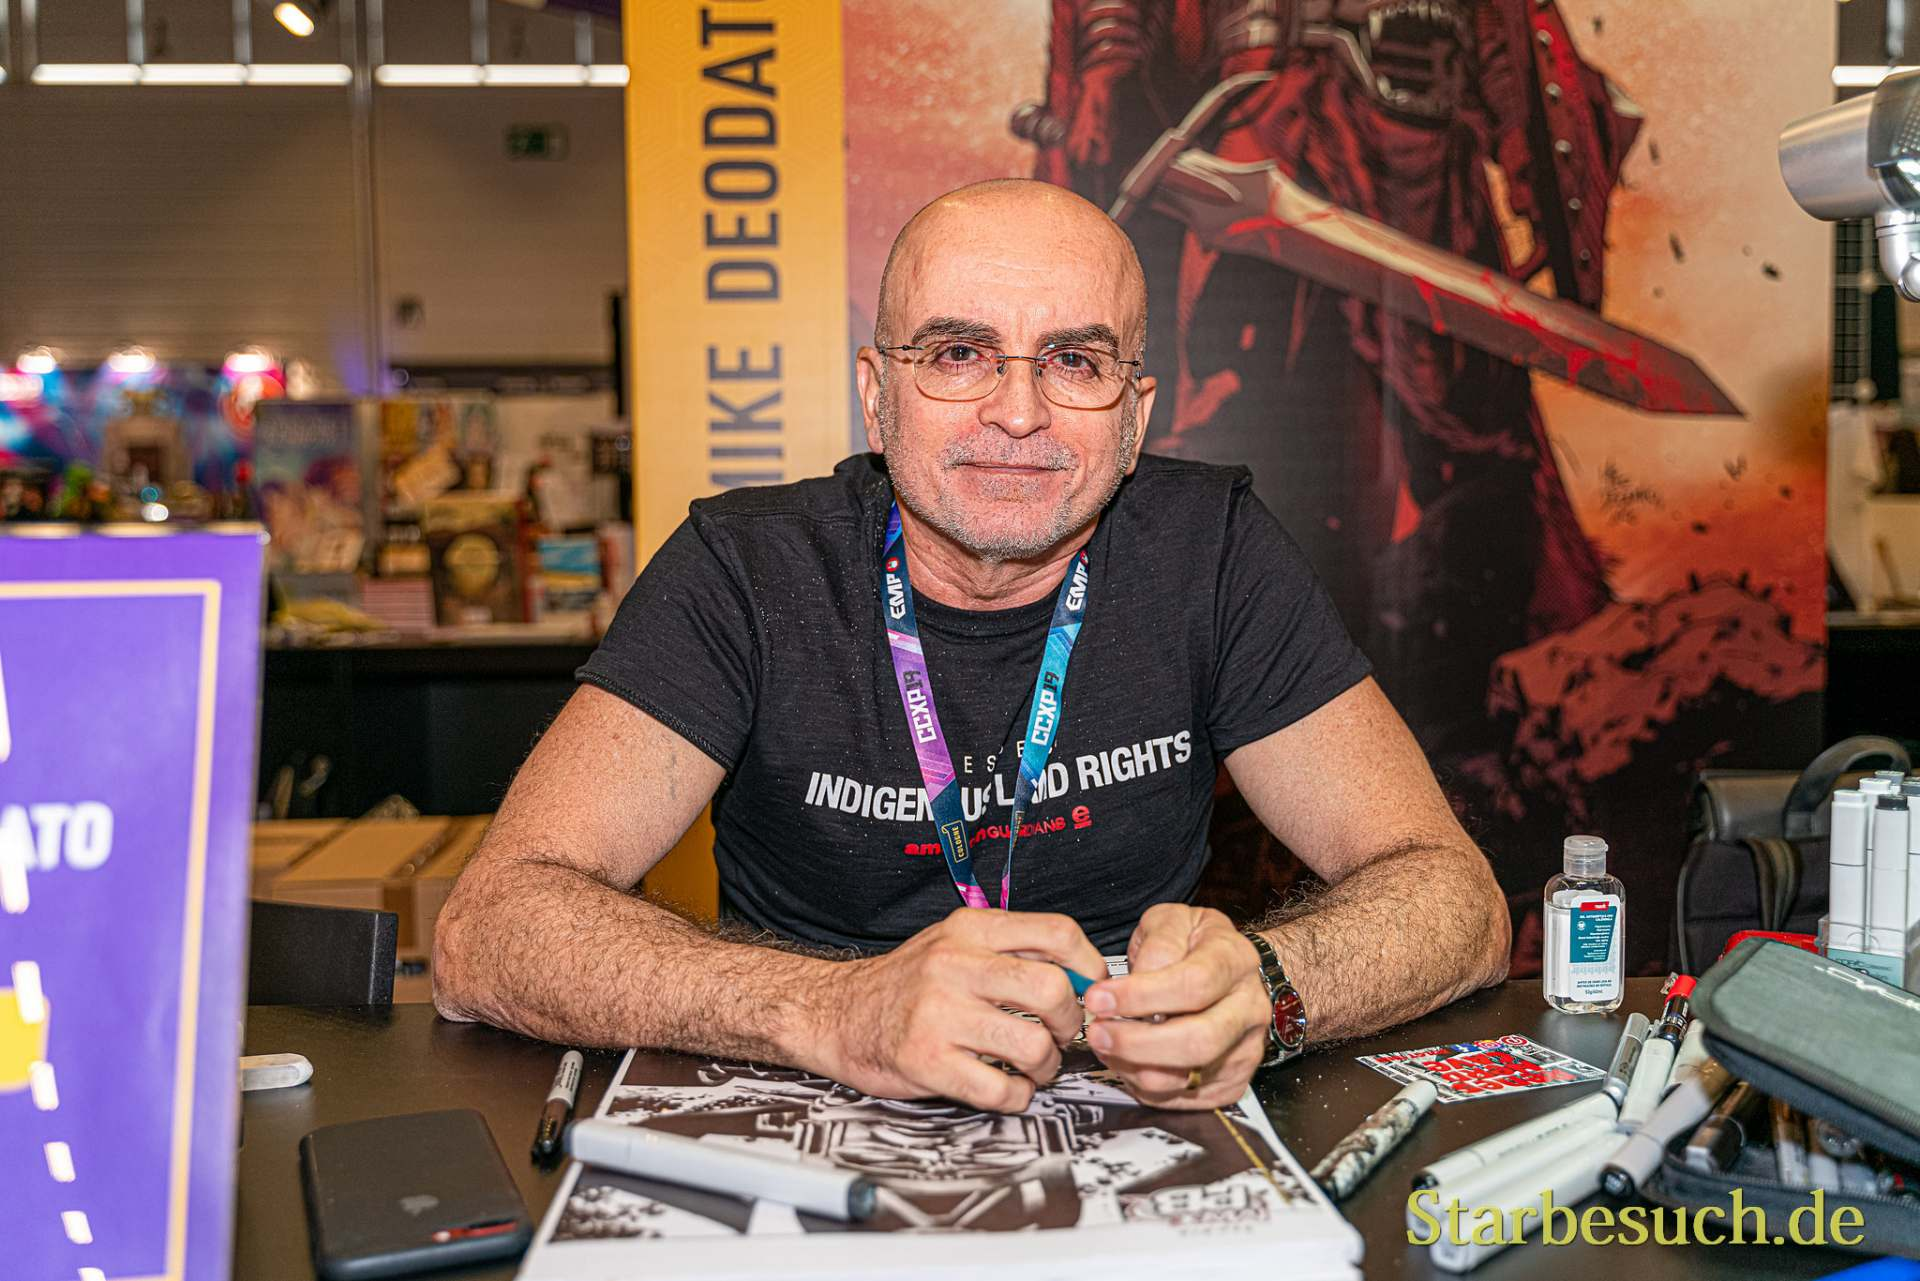 COLOGNE, GERMANY - JUN 28th 2019: Mike Deodato at CCXP Cologne